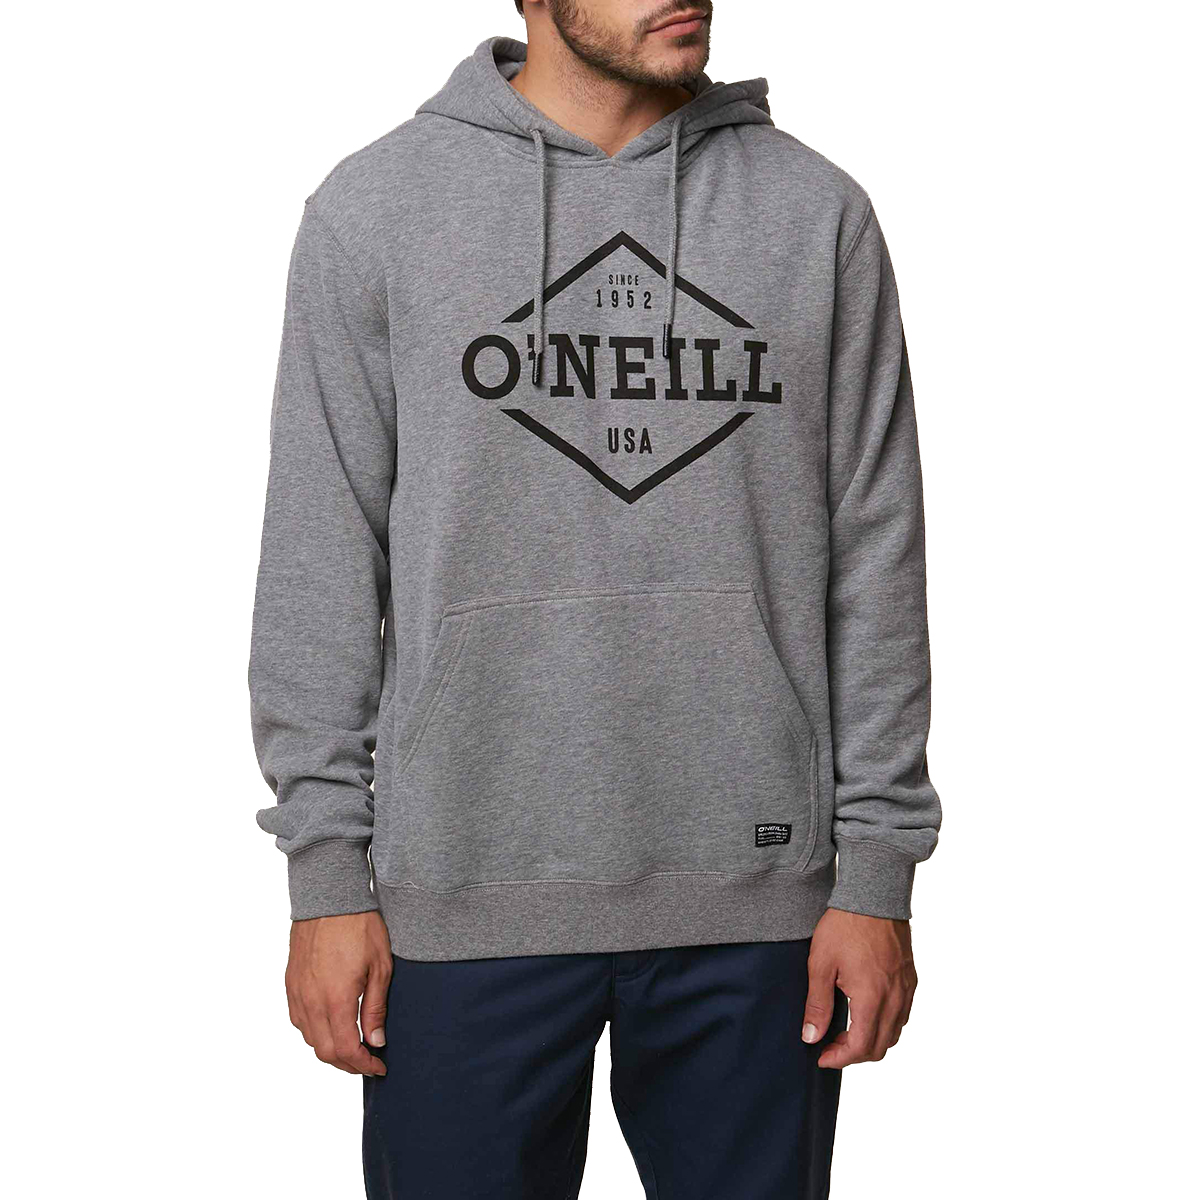 O'neill Guys' Double Trouble Pullover Hoodie - Black, L